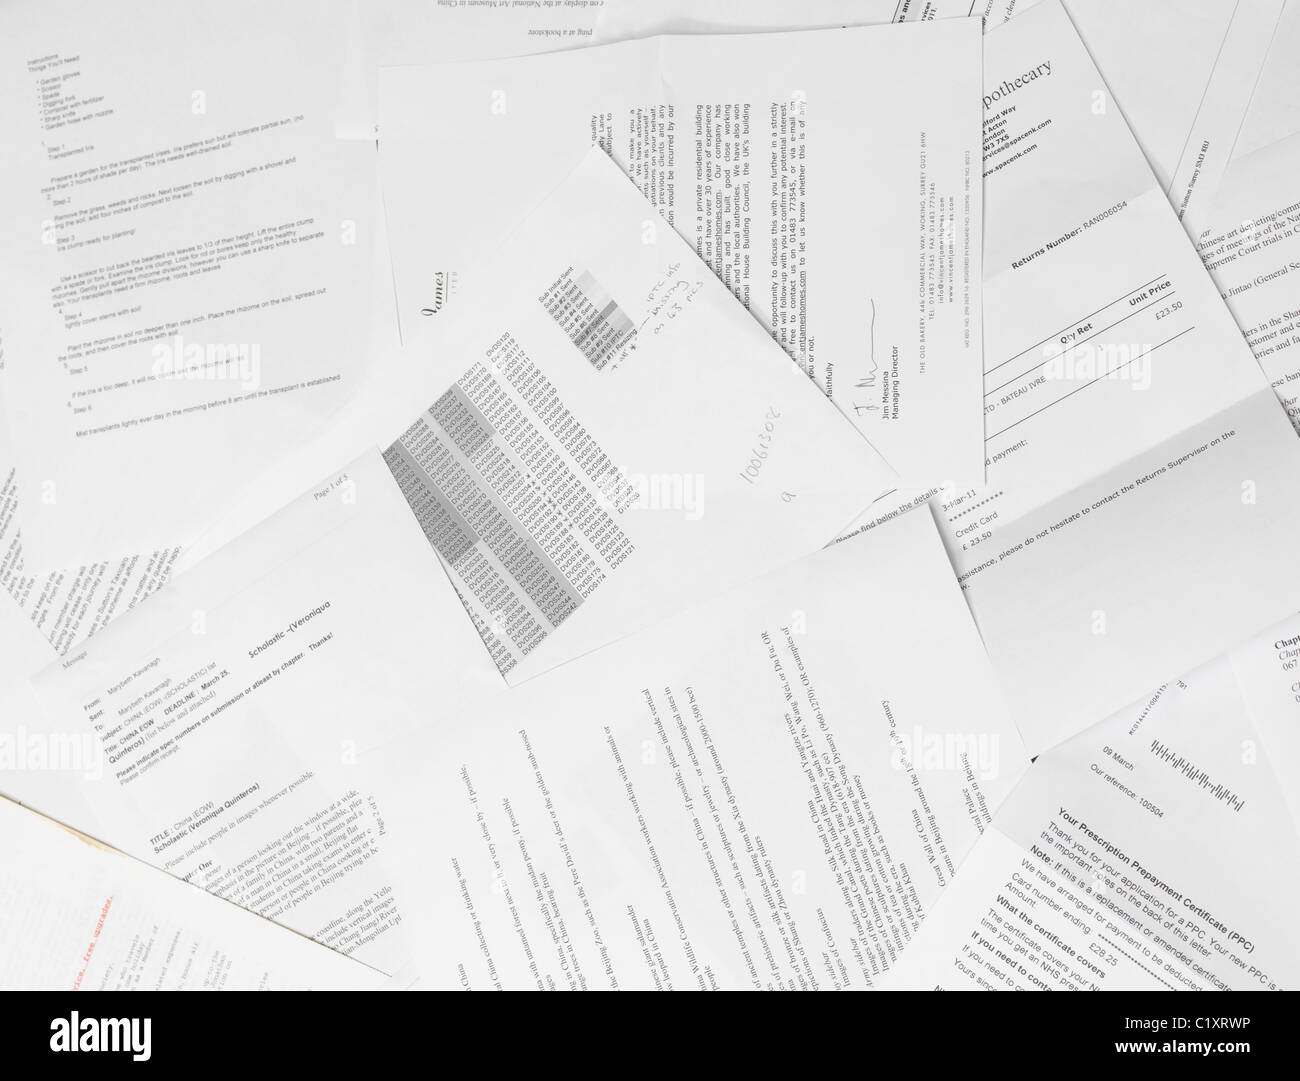 Scattered Paper Reports And Documents Stock Photo, Royalty Free ...